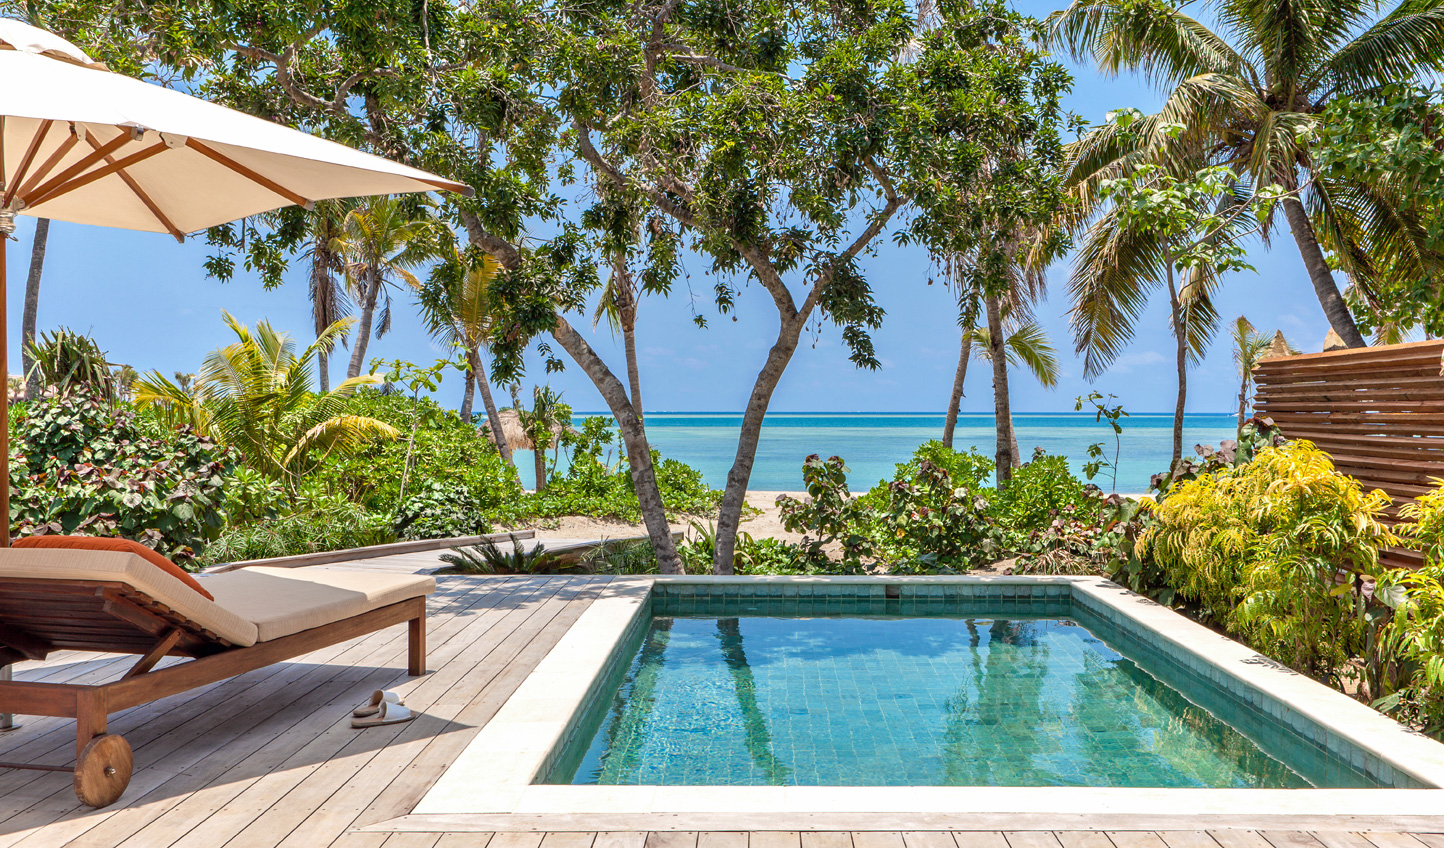 Step straight from your private pool into the ocean at Six Senses Fiji